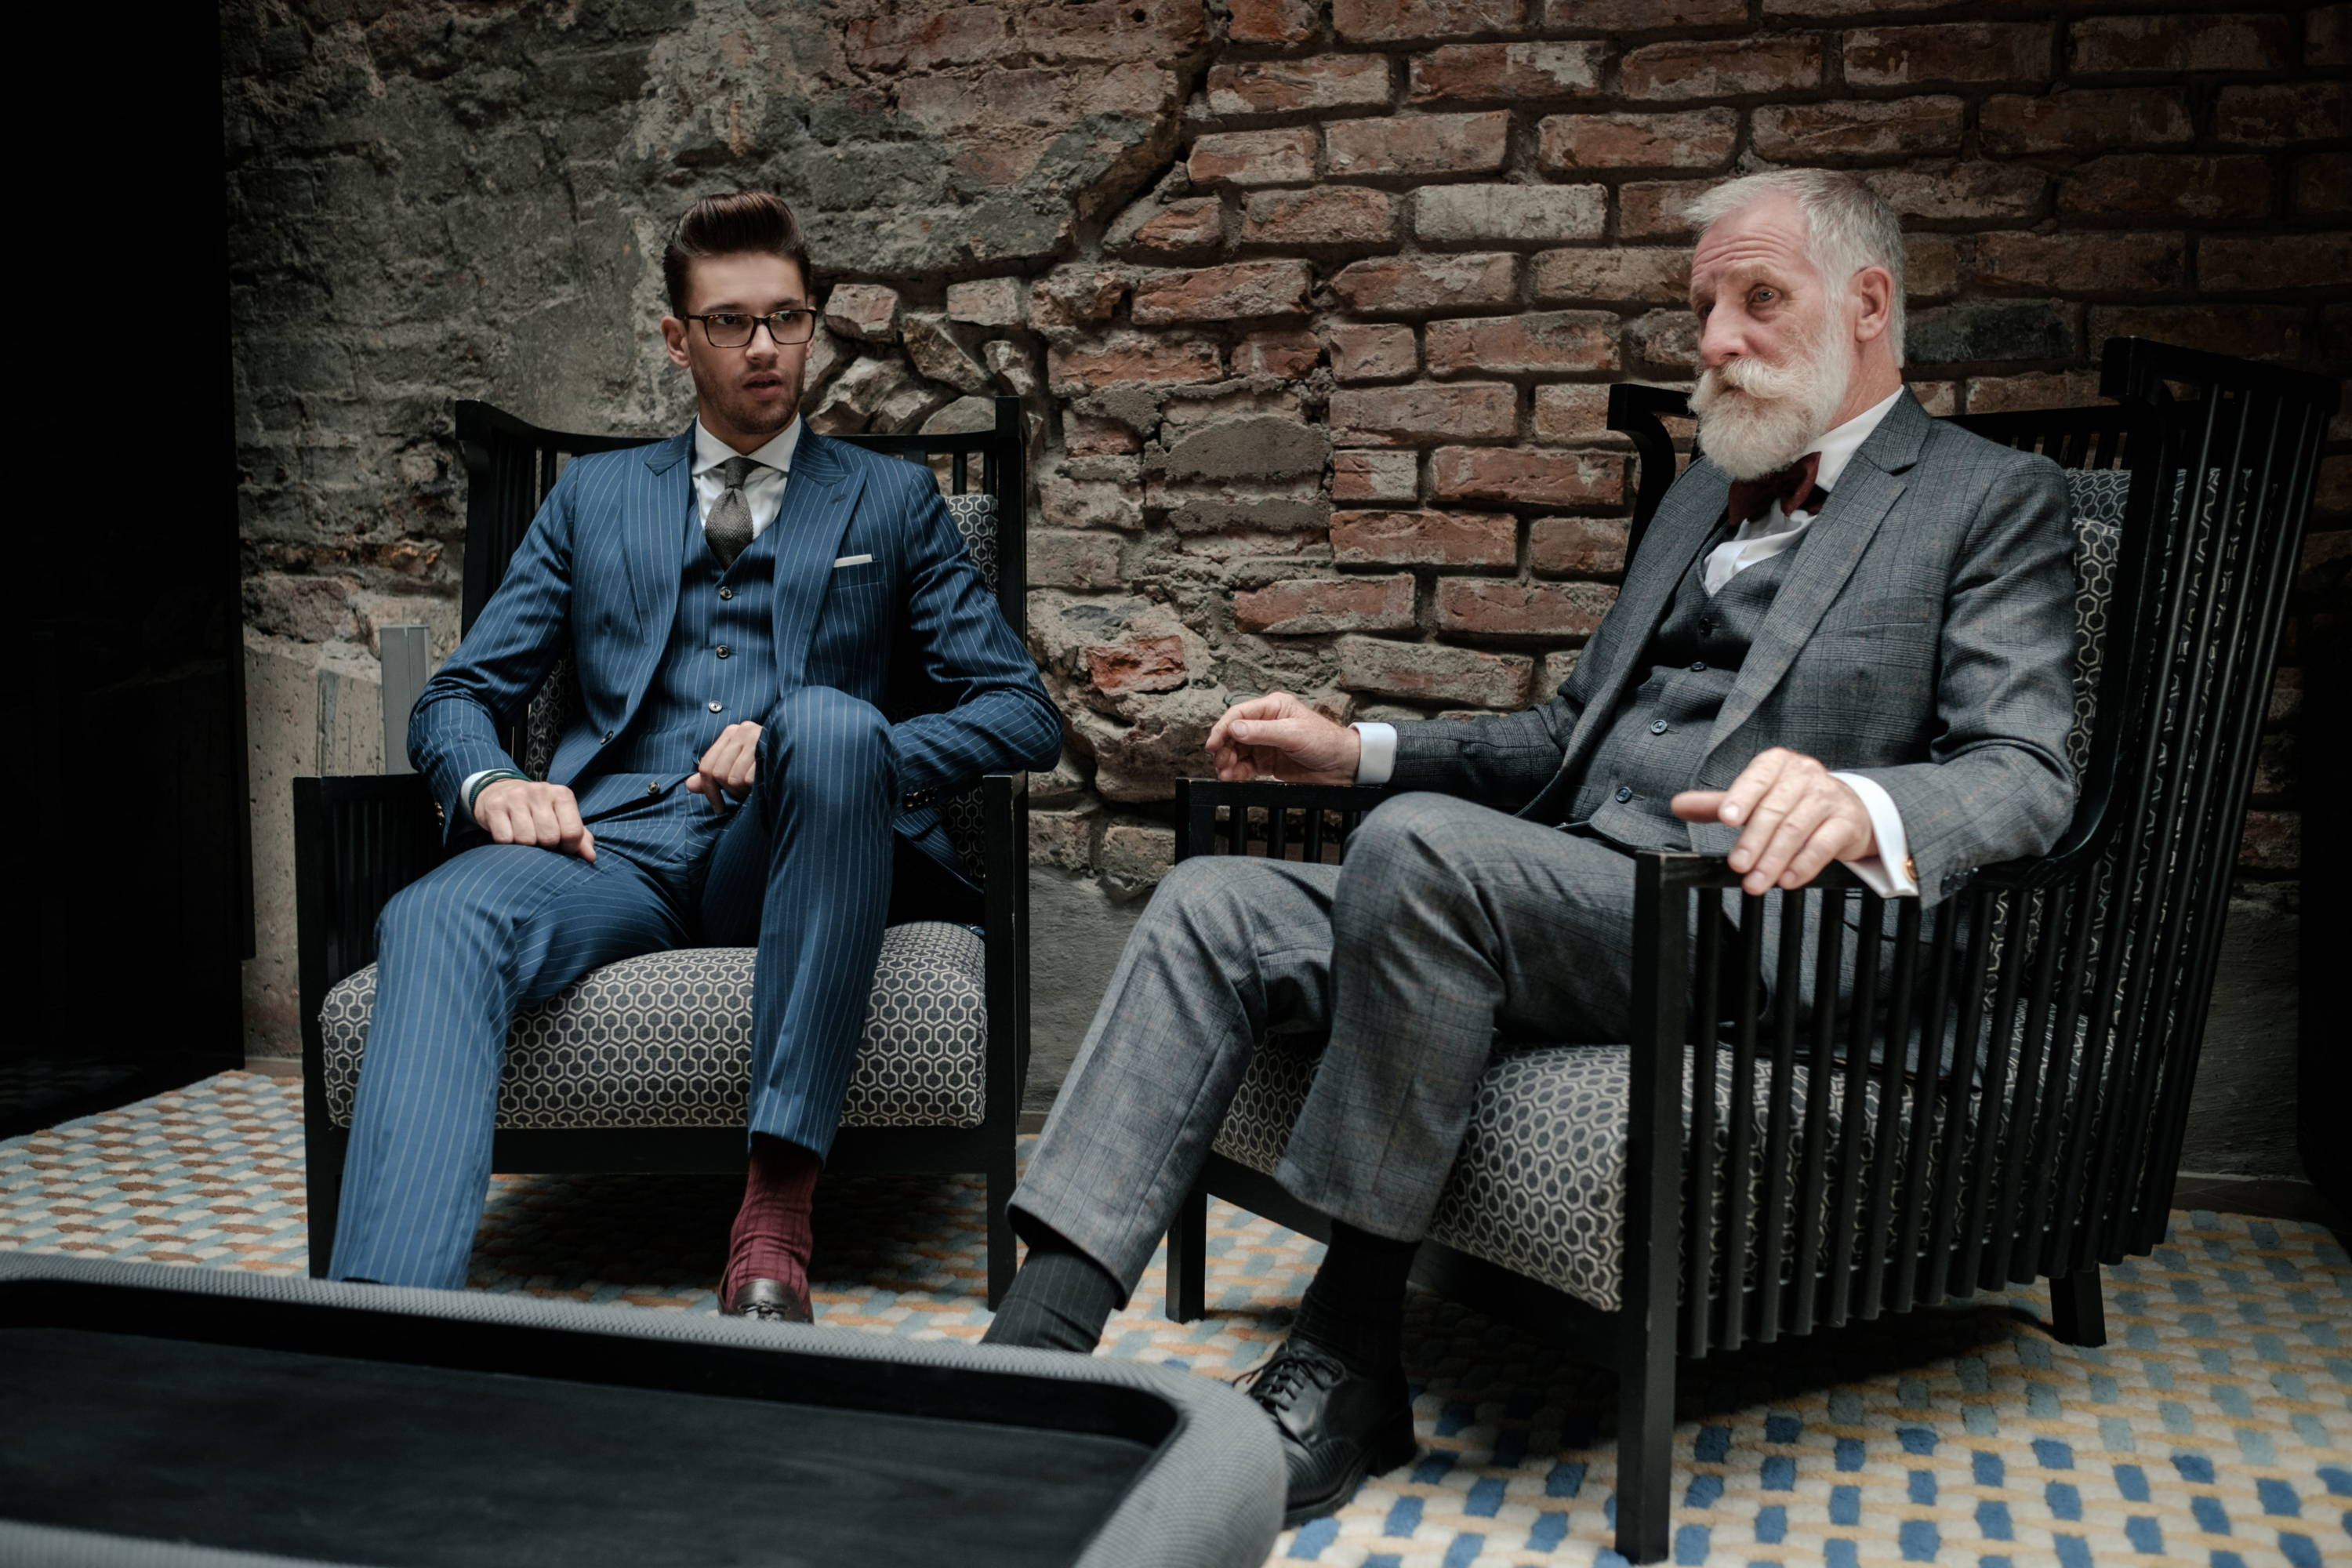 Two generations of well dressed men sit in classic check and pinstripe bespoke suits